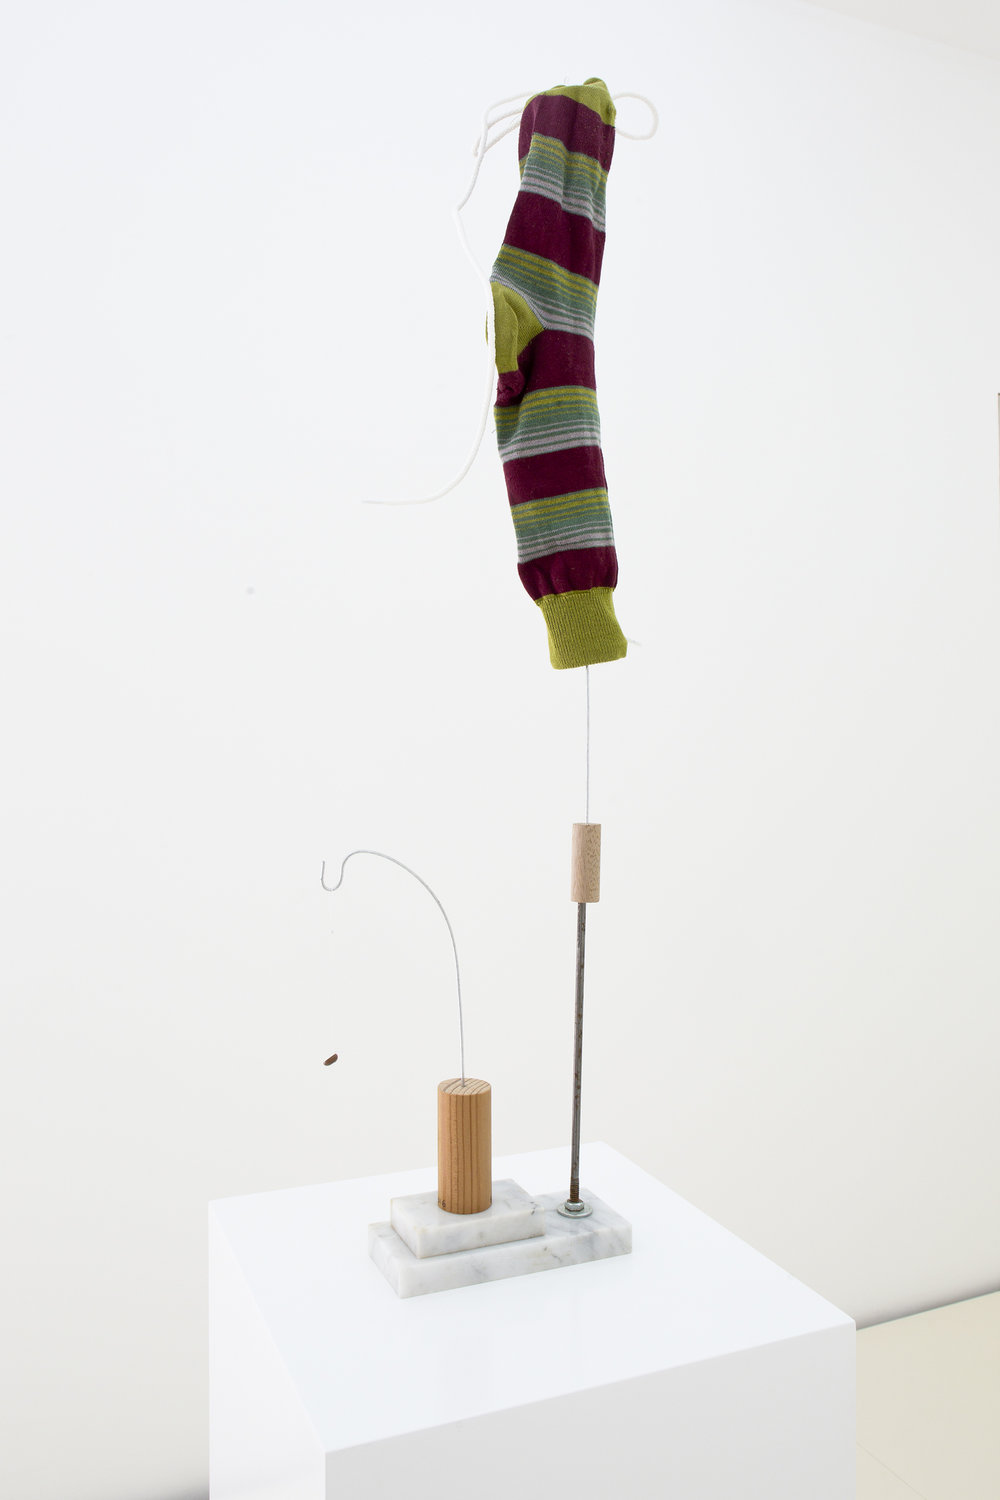 Untitled (Red with green stripes sock), 2016, Cotton sock, shoelace, shoe button, marble, wire, metal, wood, and thread, 78 x 7.5 x 6.5 cm (30.5 x 19 x 2.5 in)